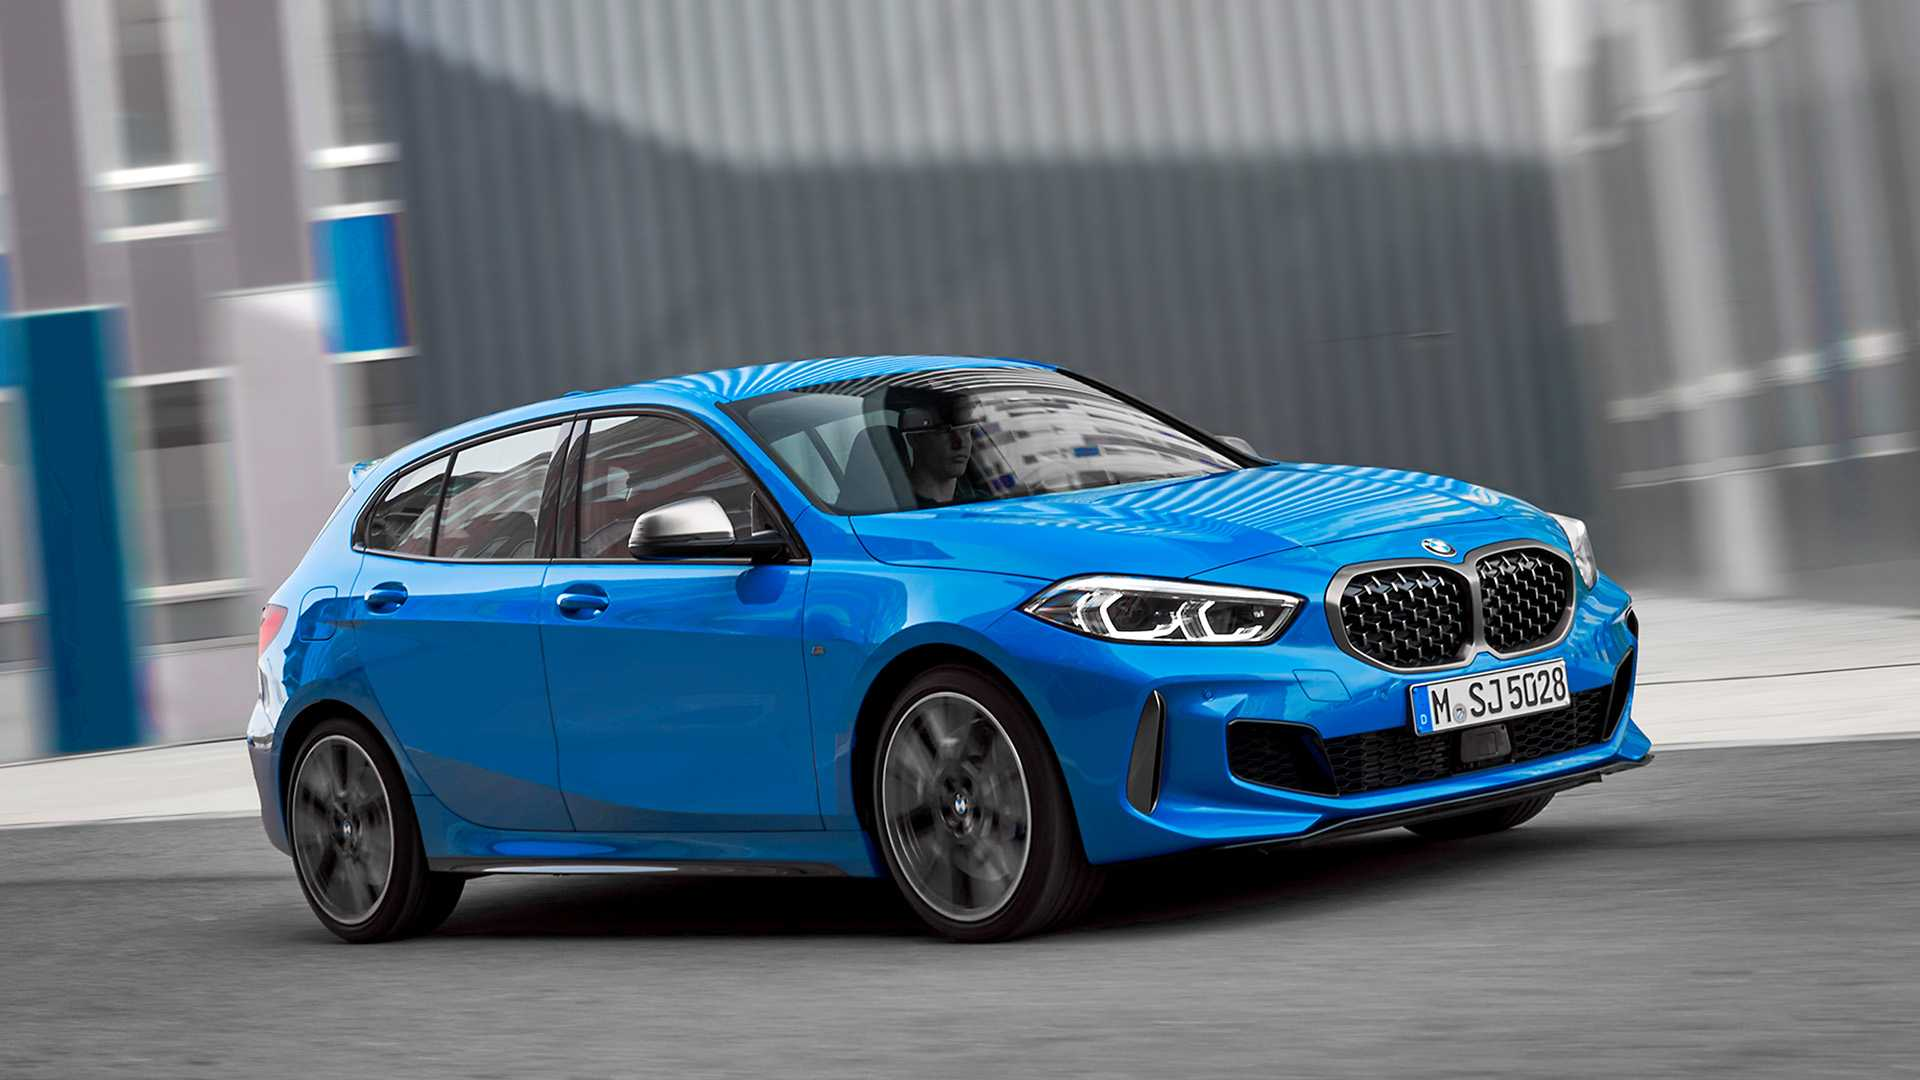 Alpina Says No To Modyfing Fwd Bmw Models Such As The 1 Series Autoevolution